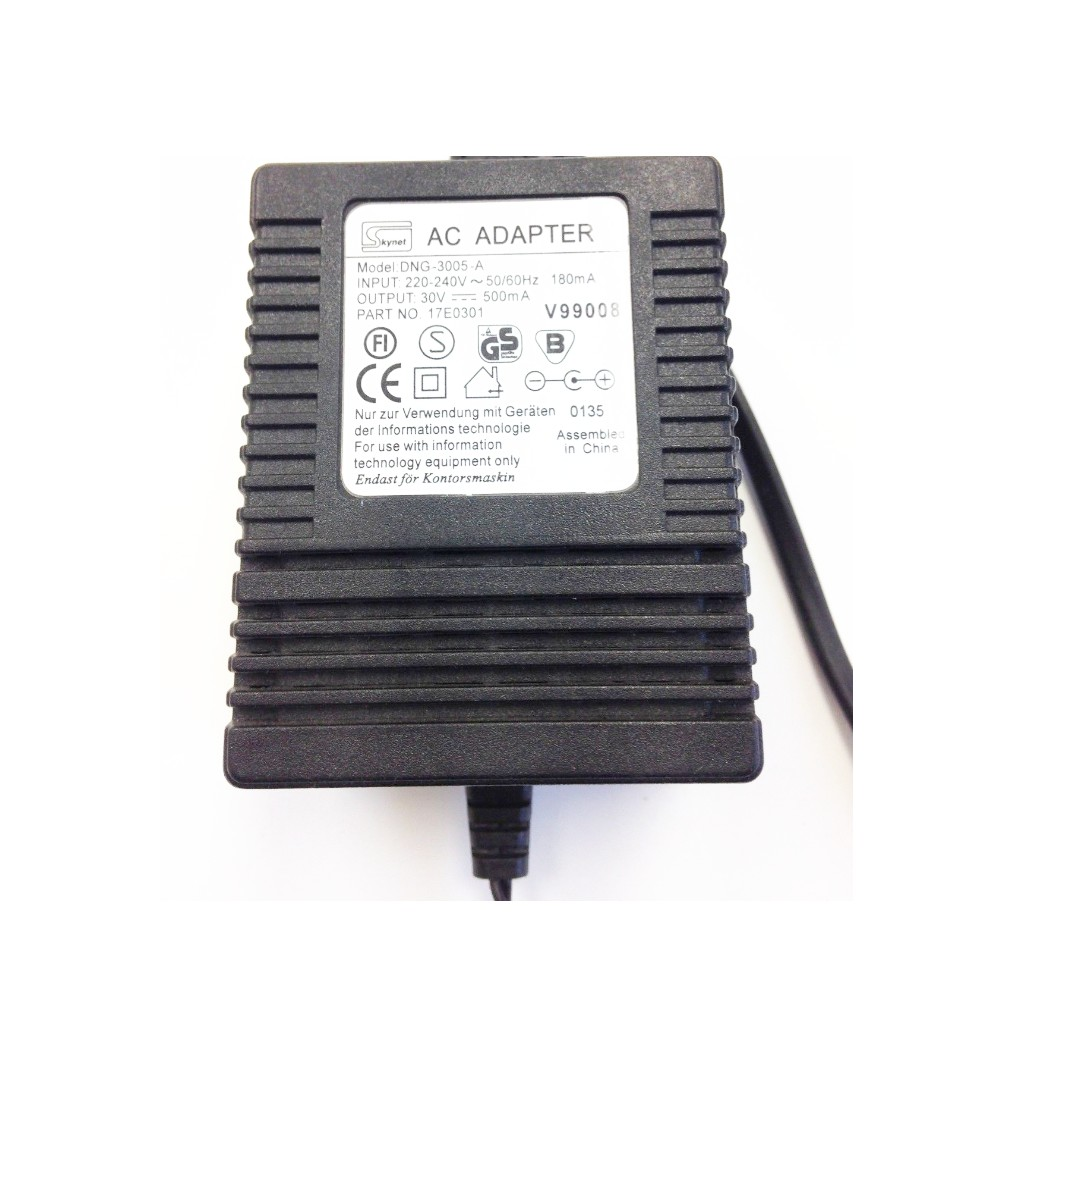 Power Adapter DNG-3005-A(30V/0.5A)